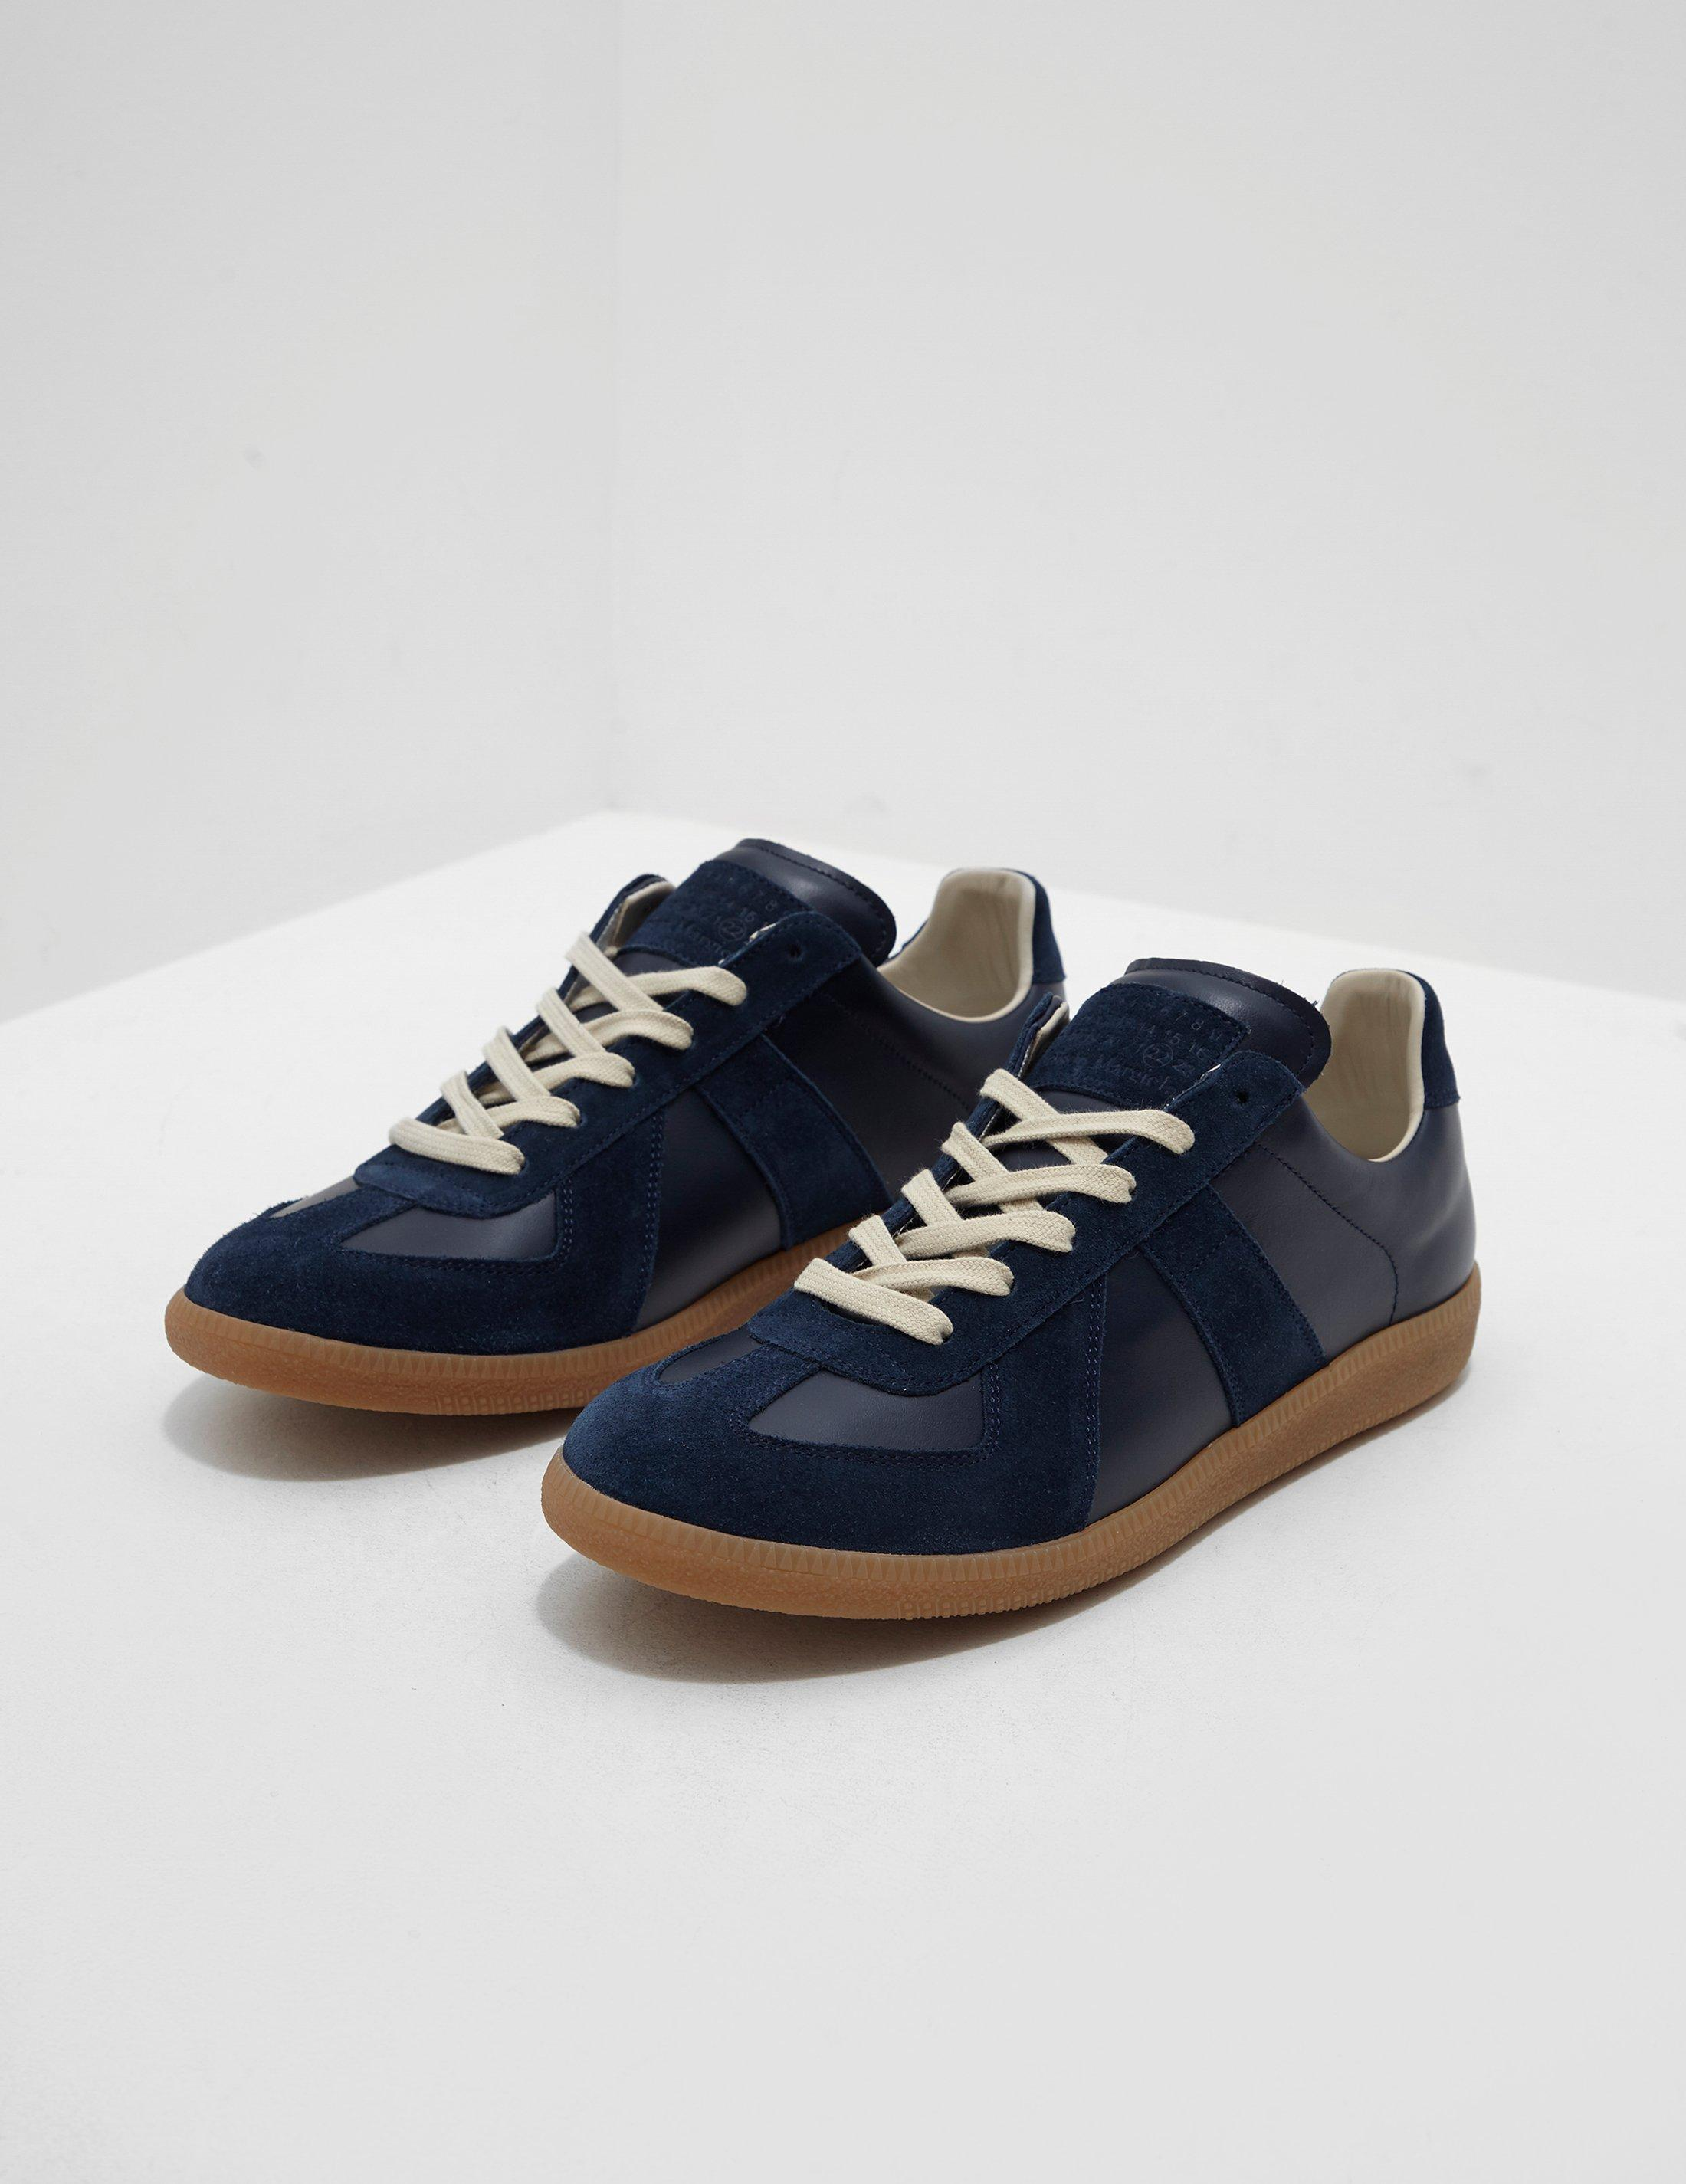 5233025e80 Maison Margiela Replica Trainers Navy Blue in Blue for Men - Save 2 ...